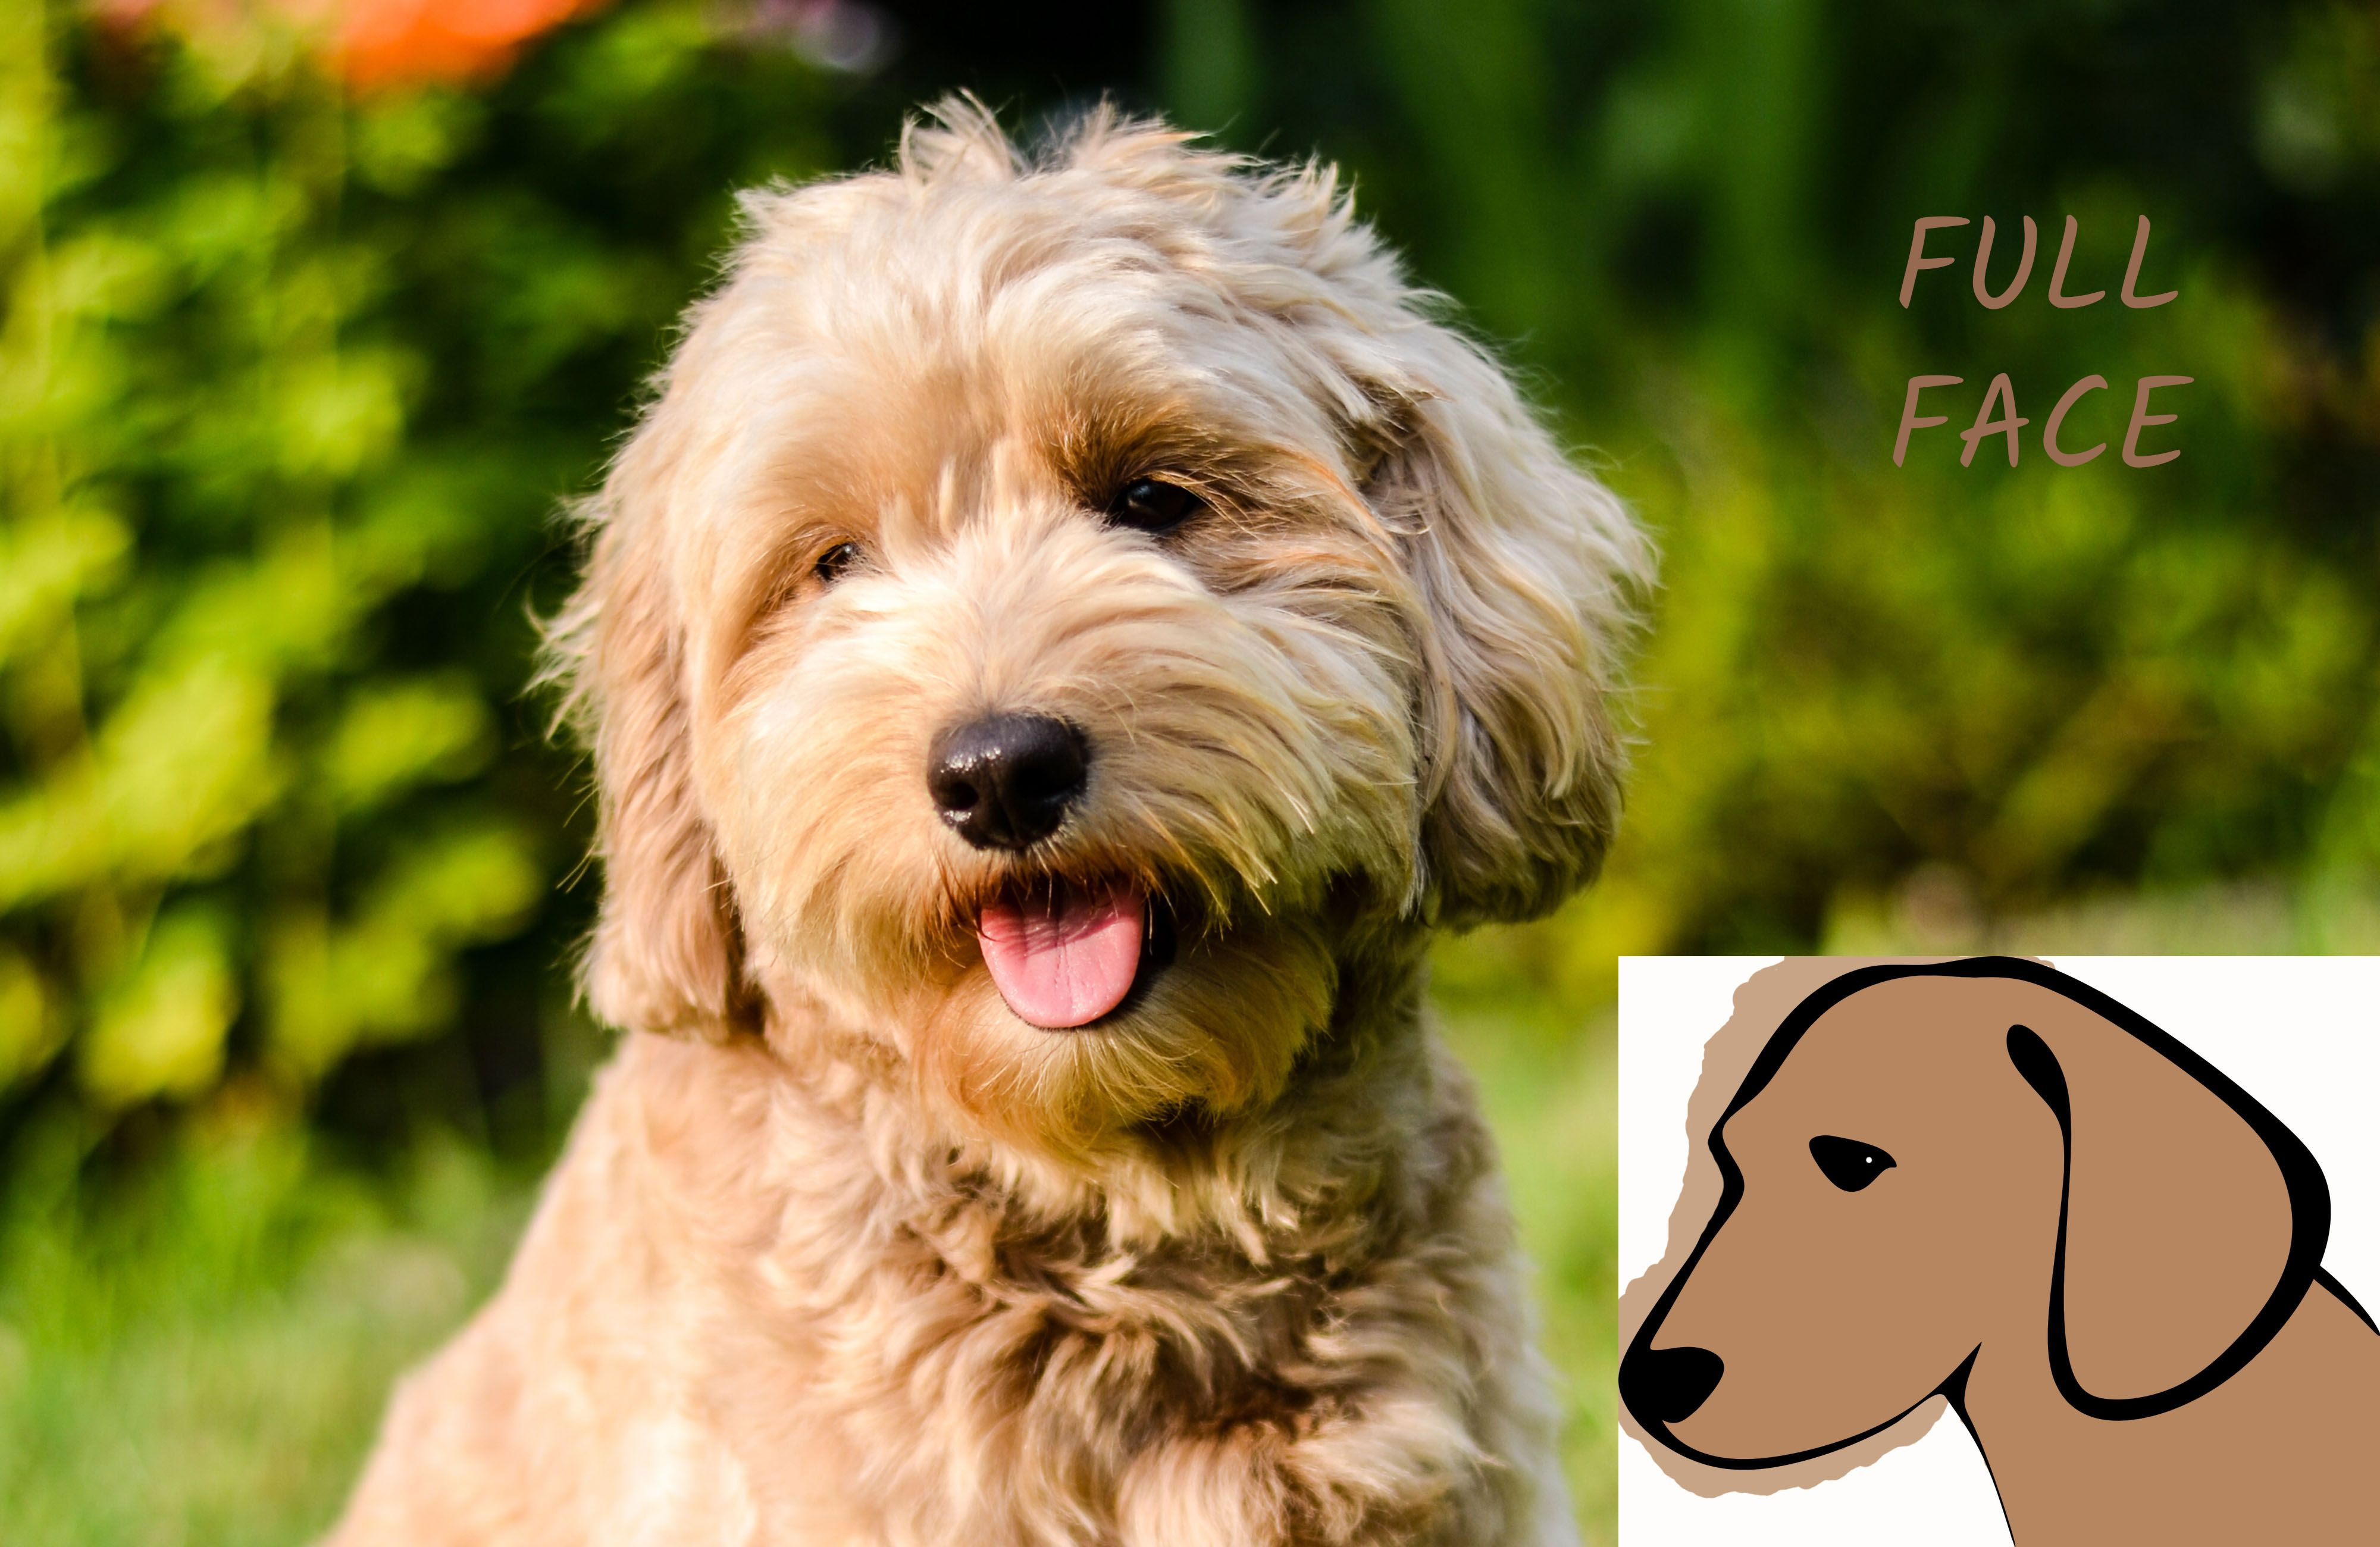 Face clips goldendoodle puppy time goldendoodle grooming